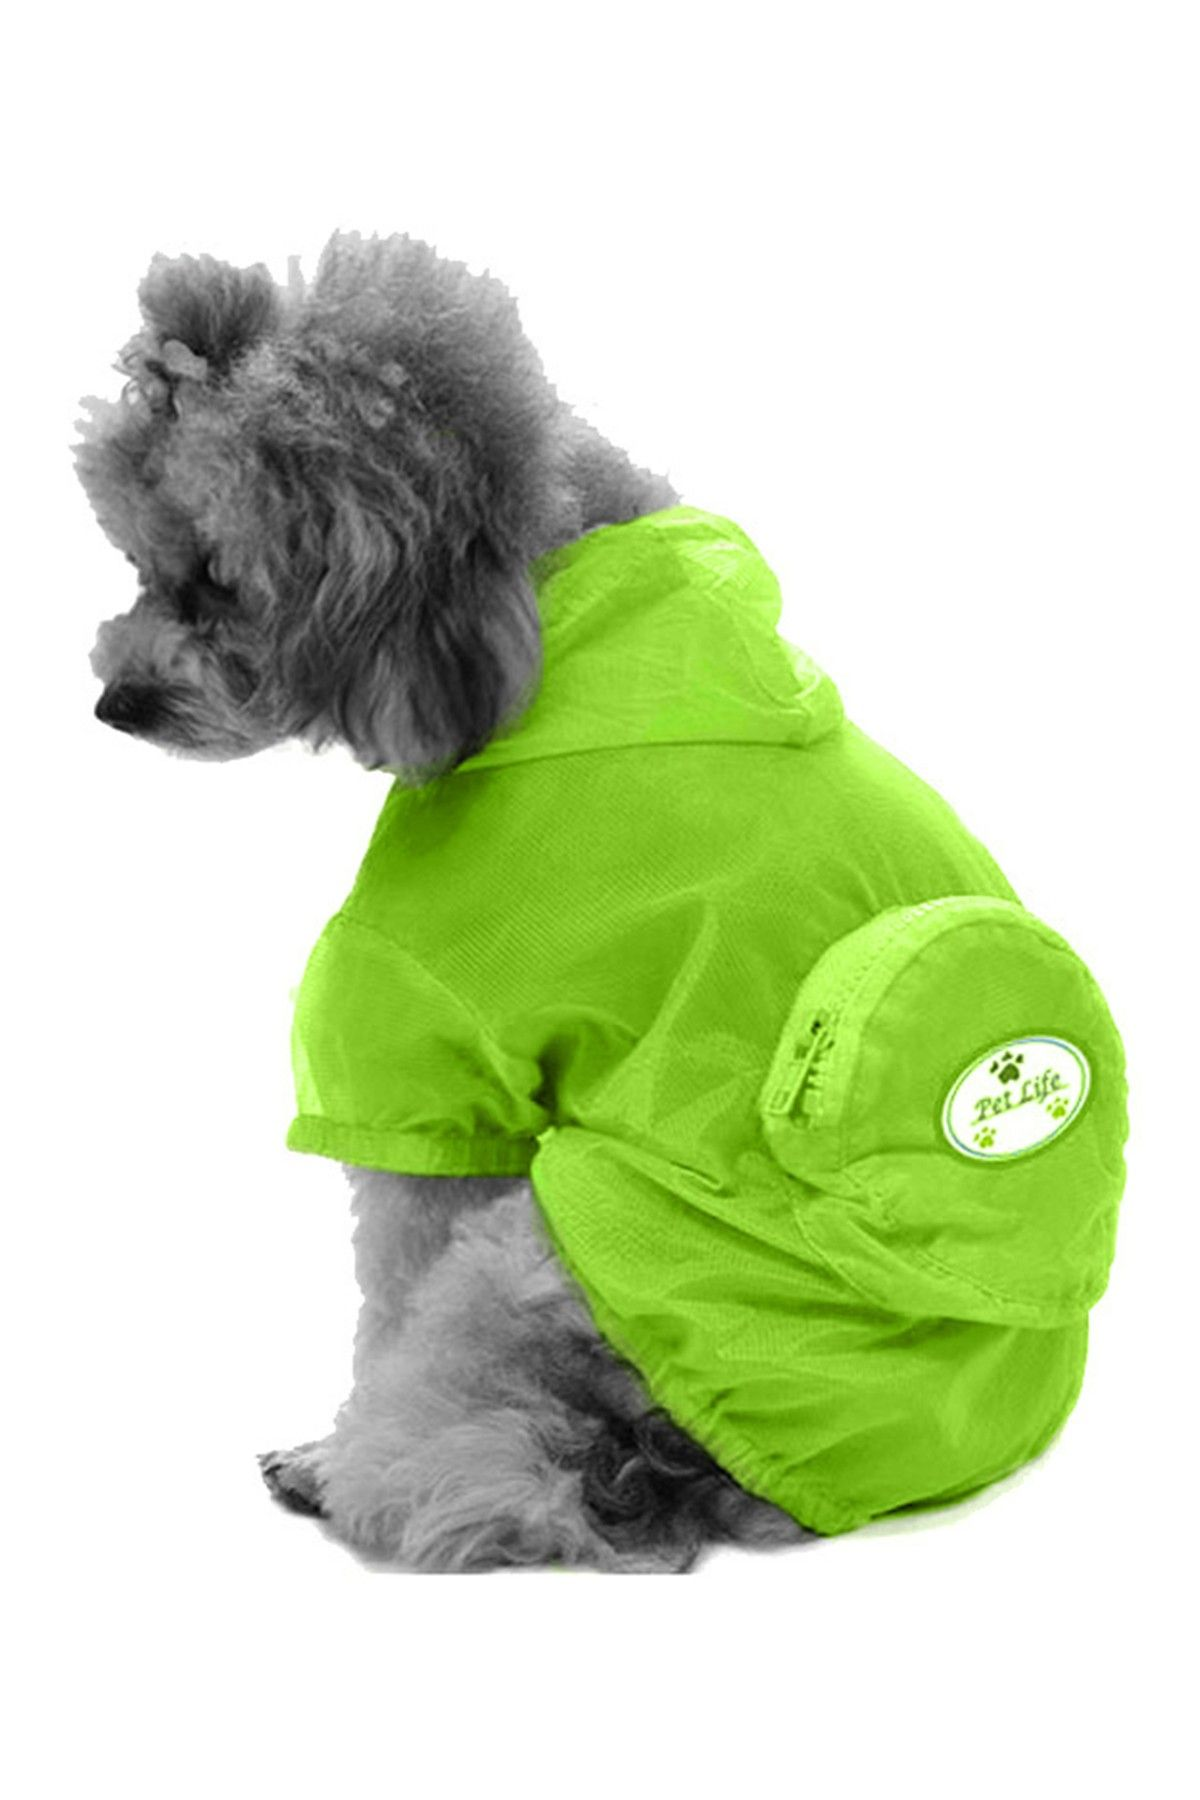 ULTIMATE WATERPROOF FOLDING DOG PONCHO- YELLOW GREEN